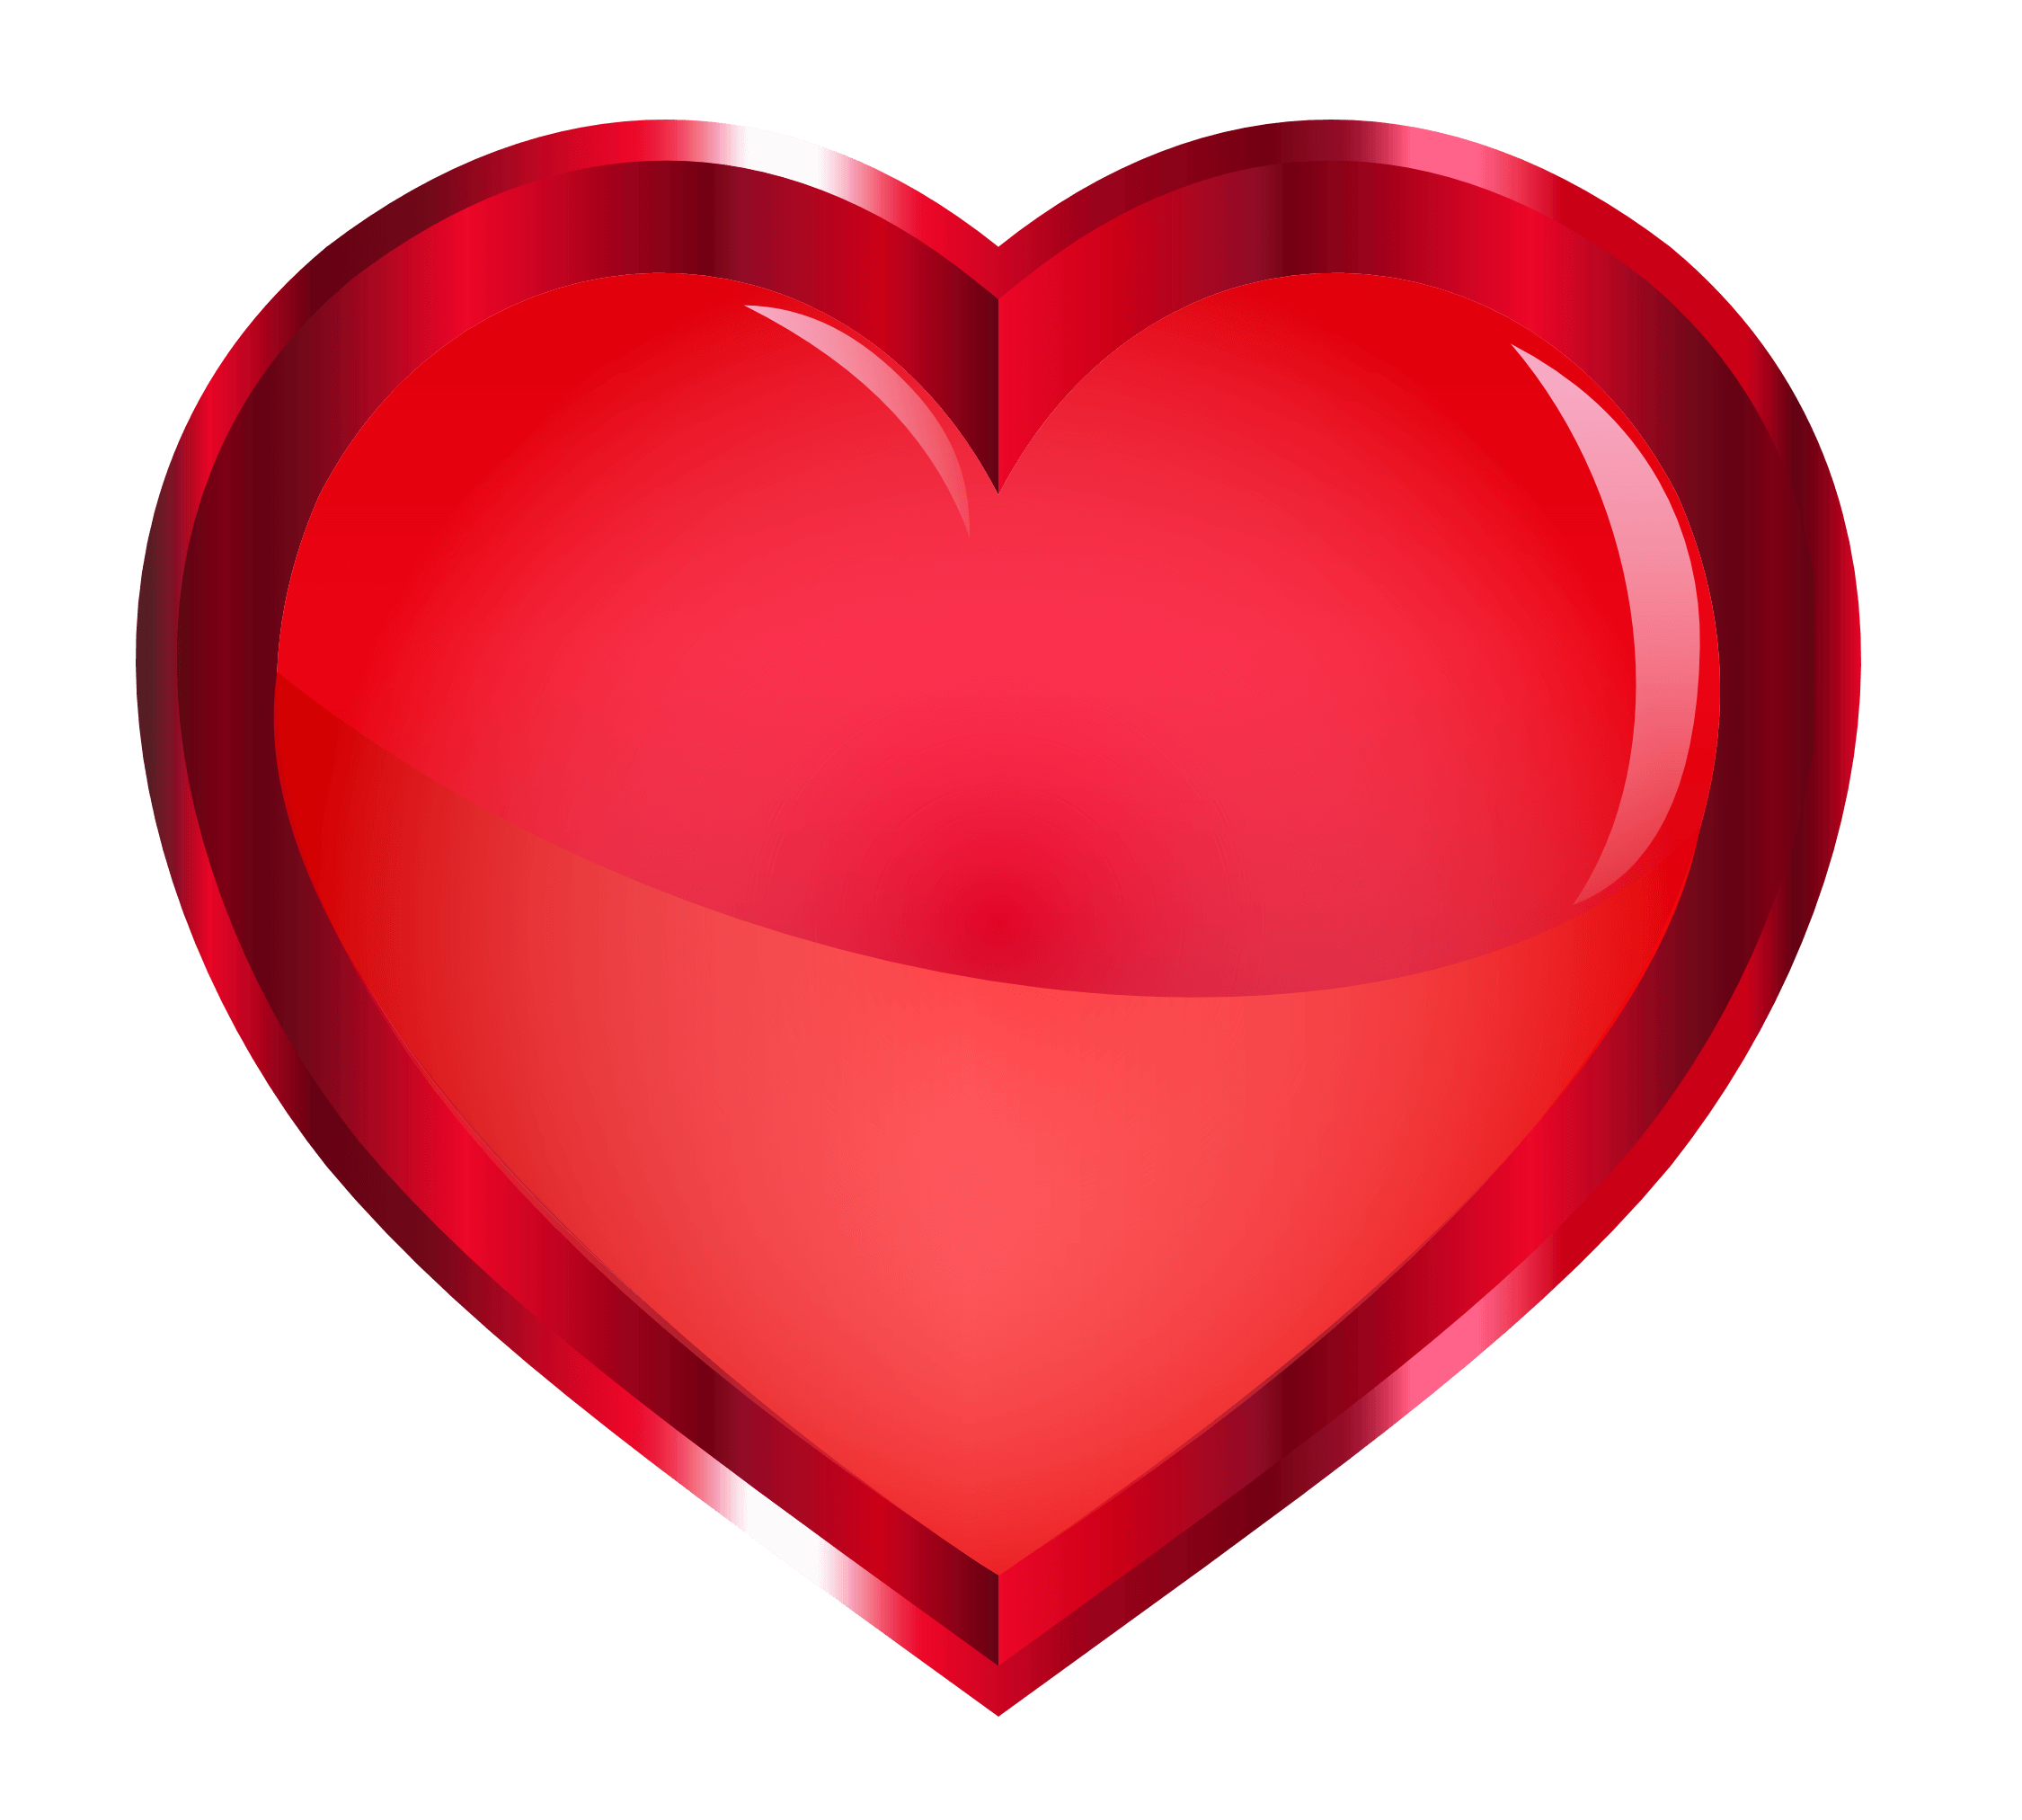 Red Heart Transparent Png Free Red Heart Transparent Png Transparent Images 64885 Pngio